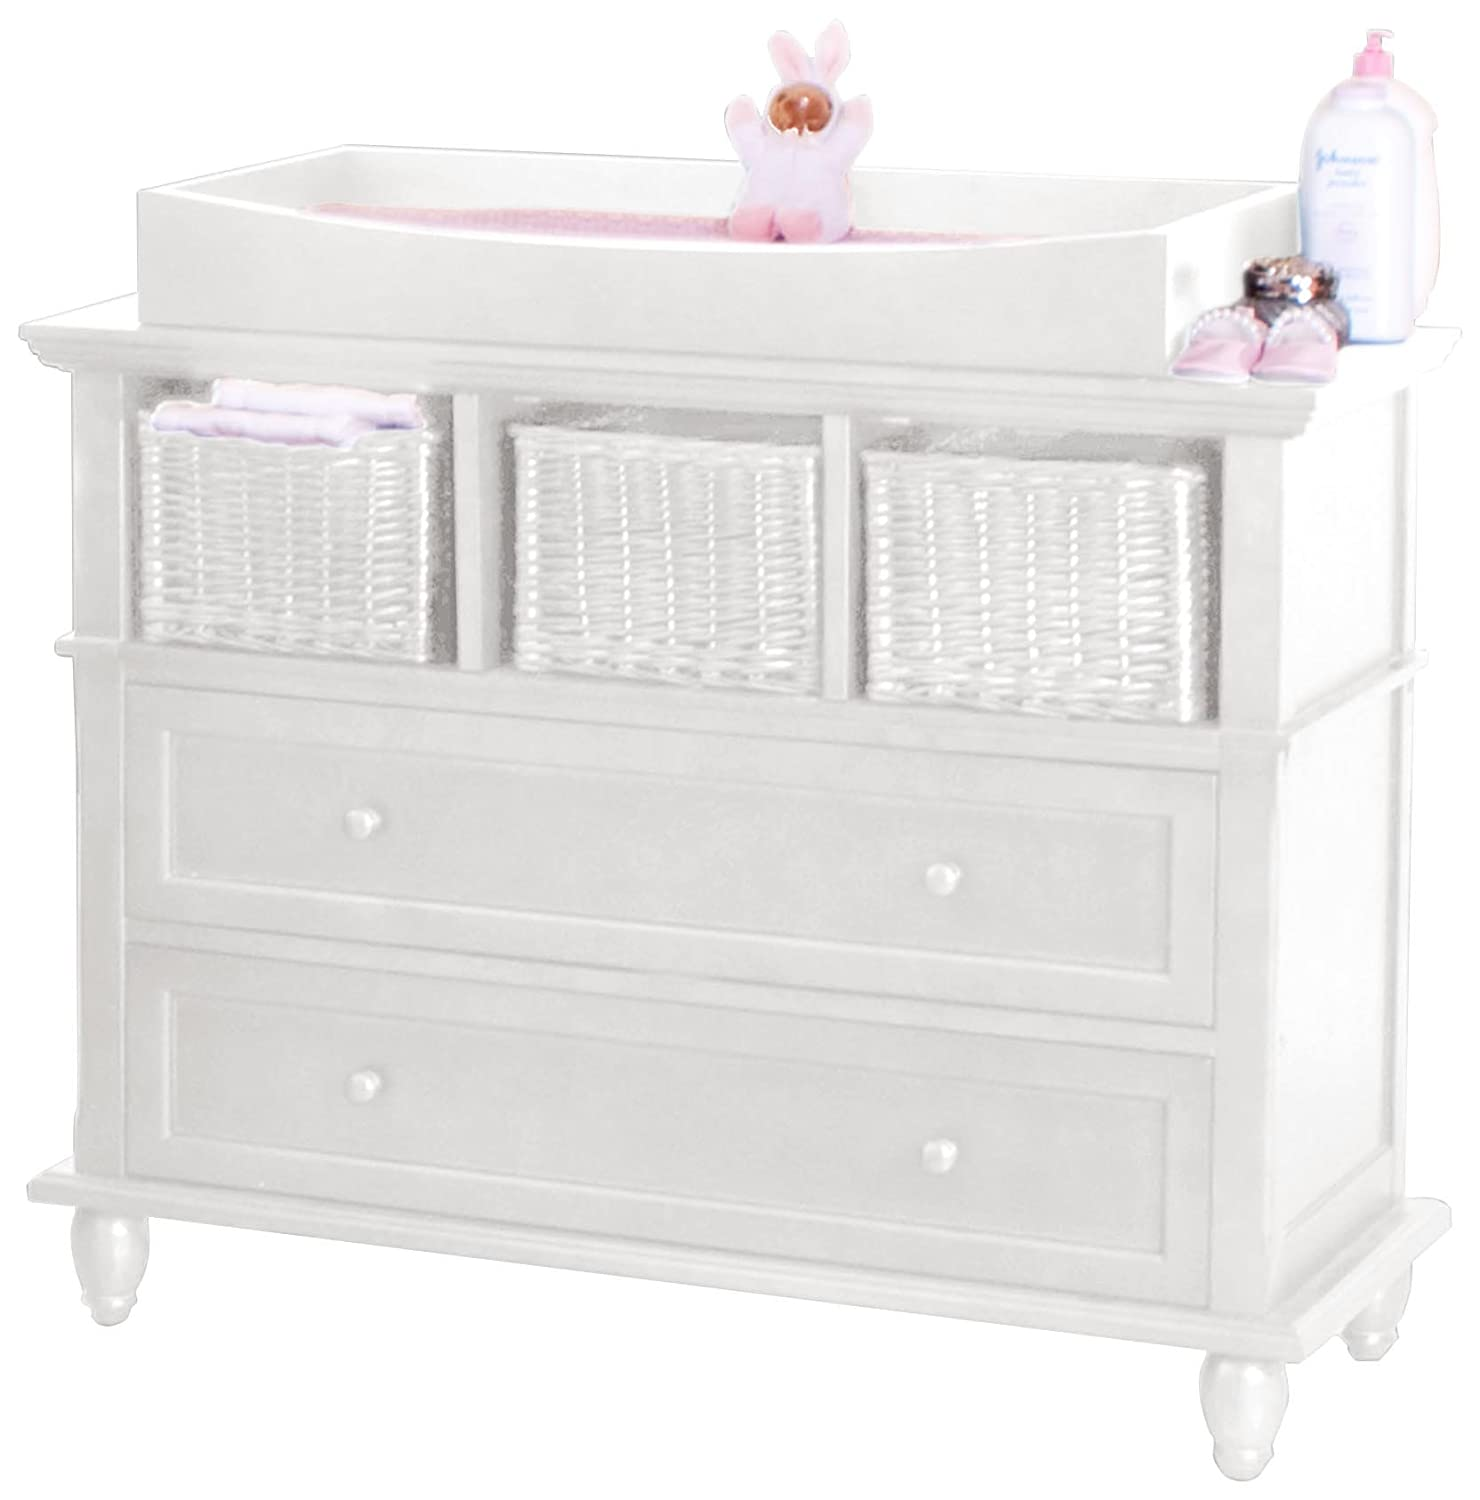 Stupendous Buy Bsf Baby Addison Changing Table White Online At Low Download Free Architecture Designs Jebrpmadebymaigaardcom